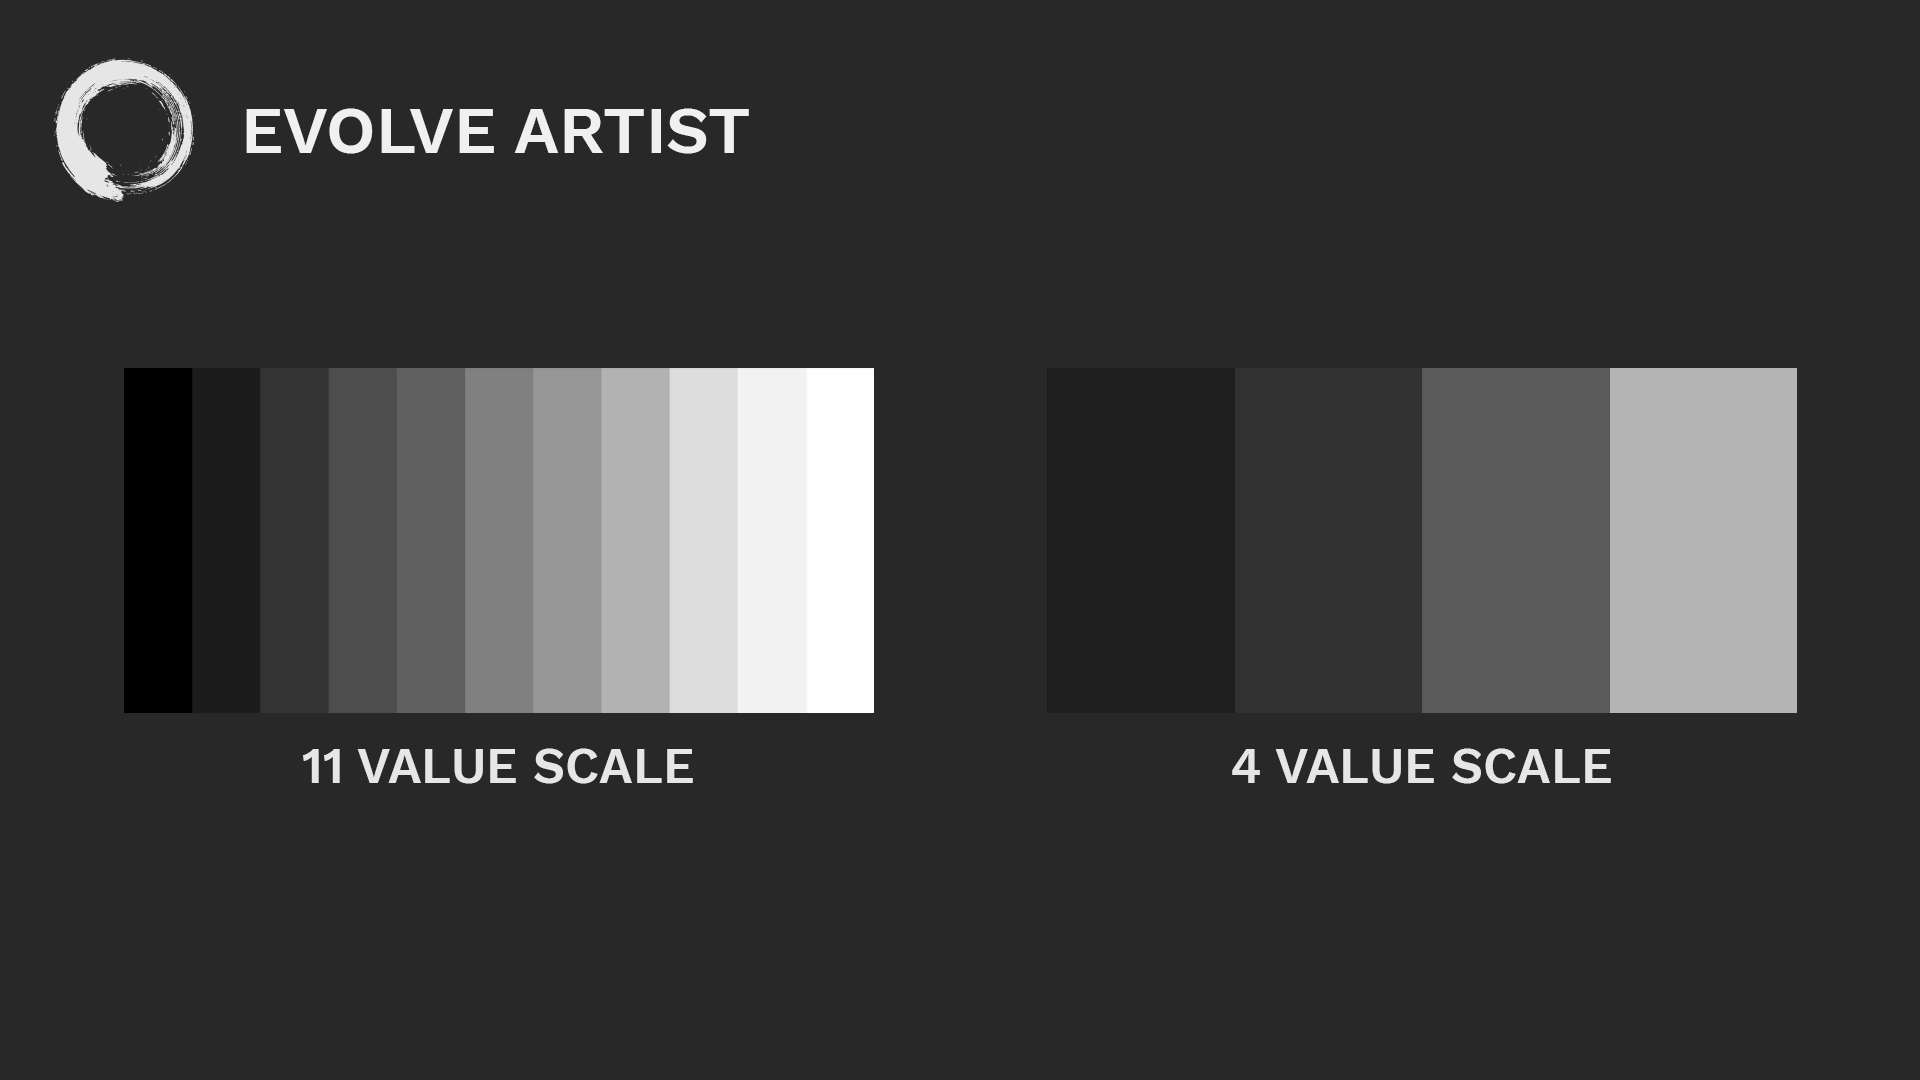 Evolve Artist uses a Four-Value Scale